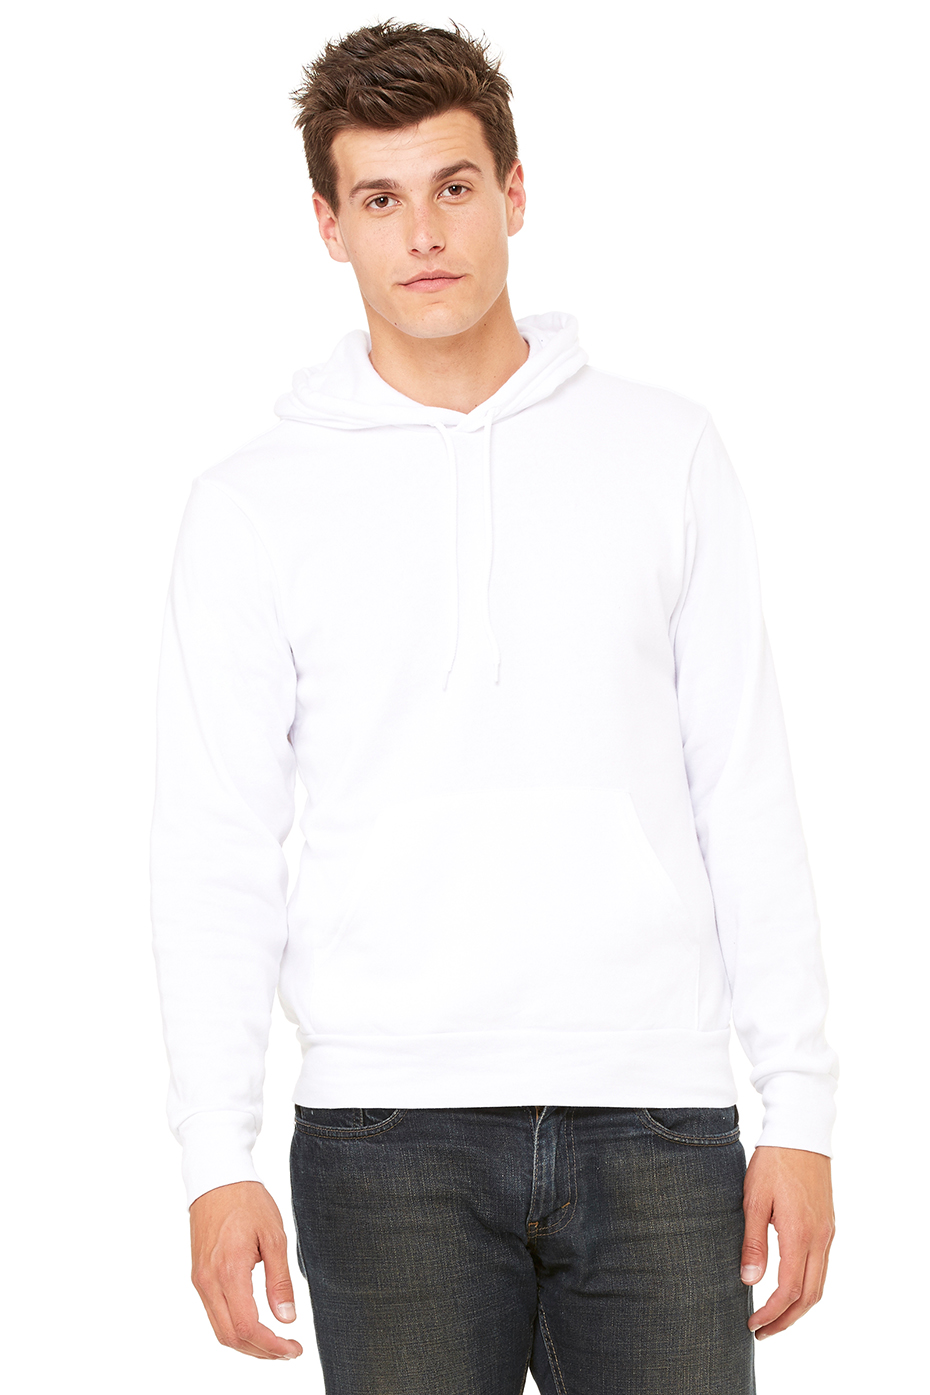 825408ef705e7c Hoodies For Men | Custom Sweatshirts | Pullover Hoodies | Mens Wholesale  Clothing | Bella Canvas